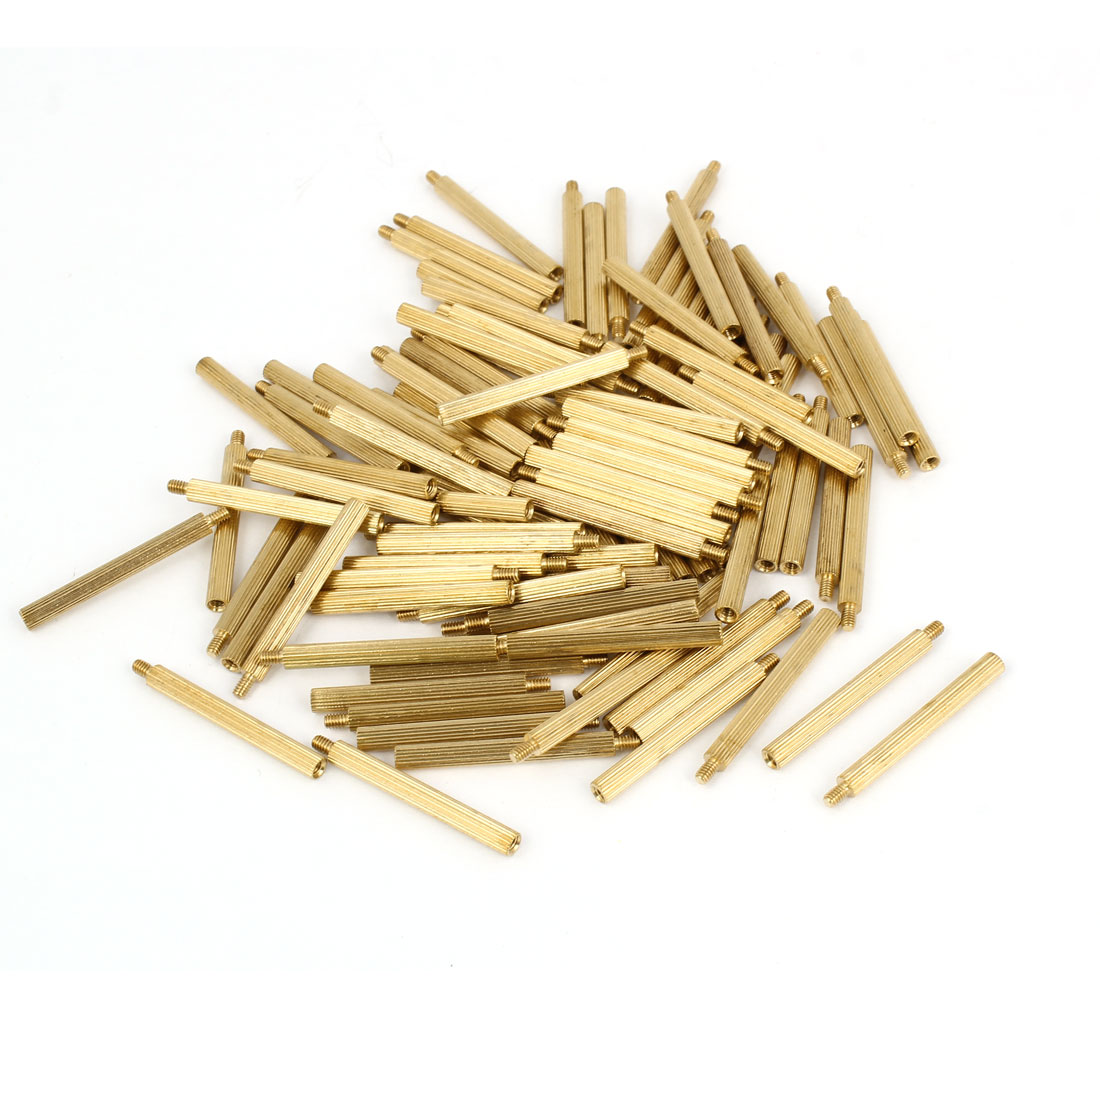 100 Pcs M2 Female Thread Cylindrical Brass Stand-off Support M2x27mm